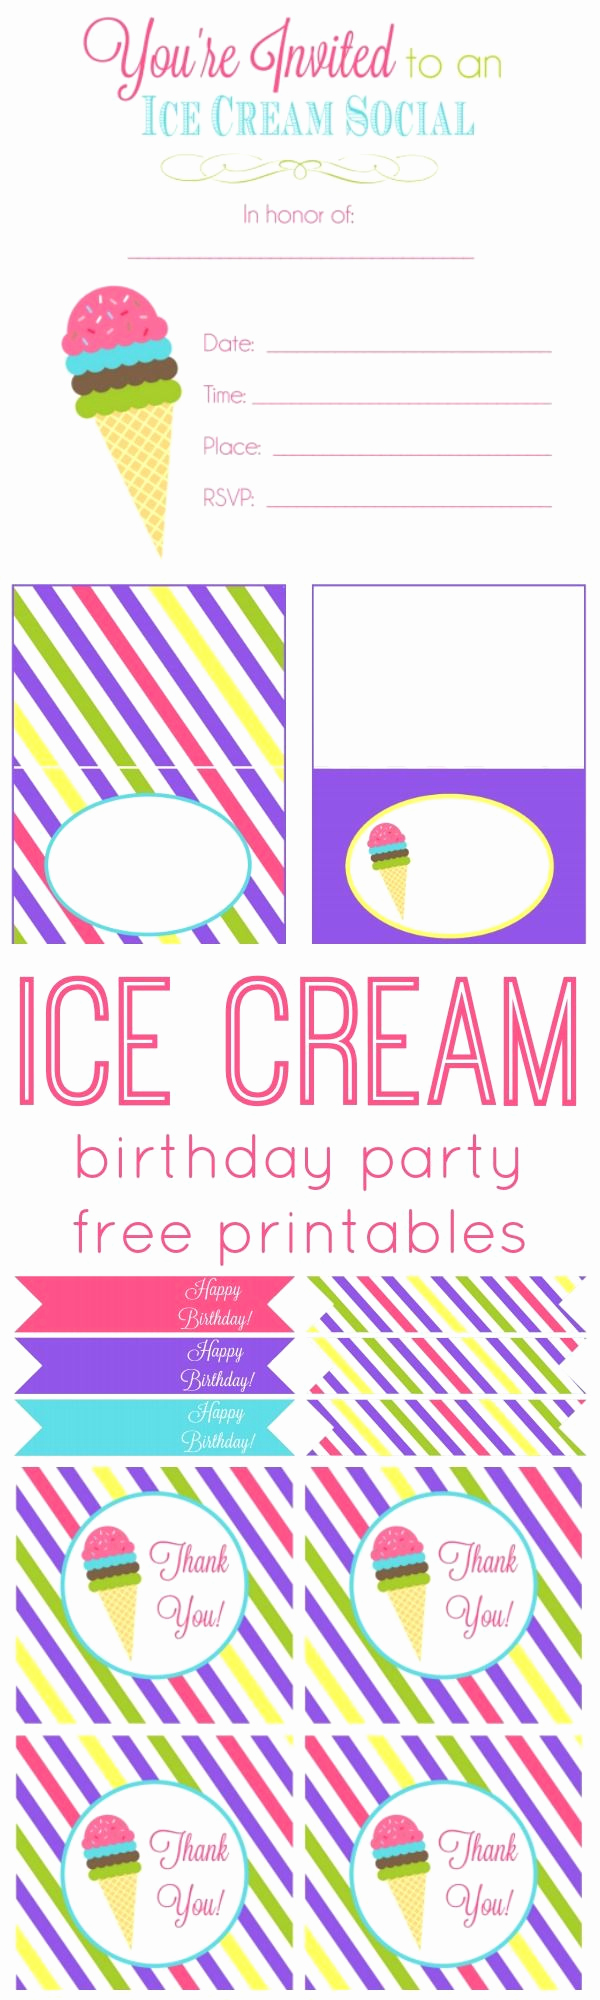 Ice Cream social Invitation Template Luxury Ice Cream Birthday Party Free Printables Party Ideas